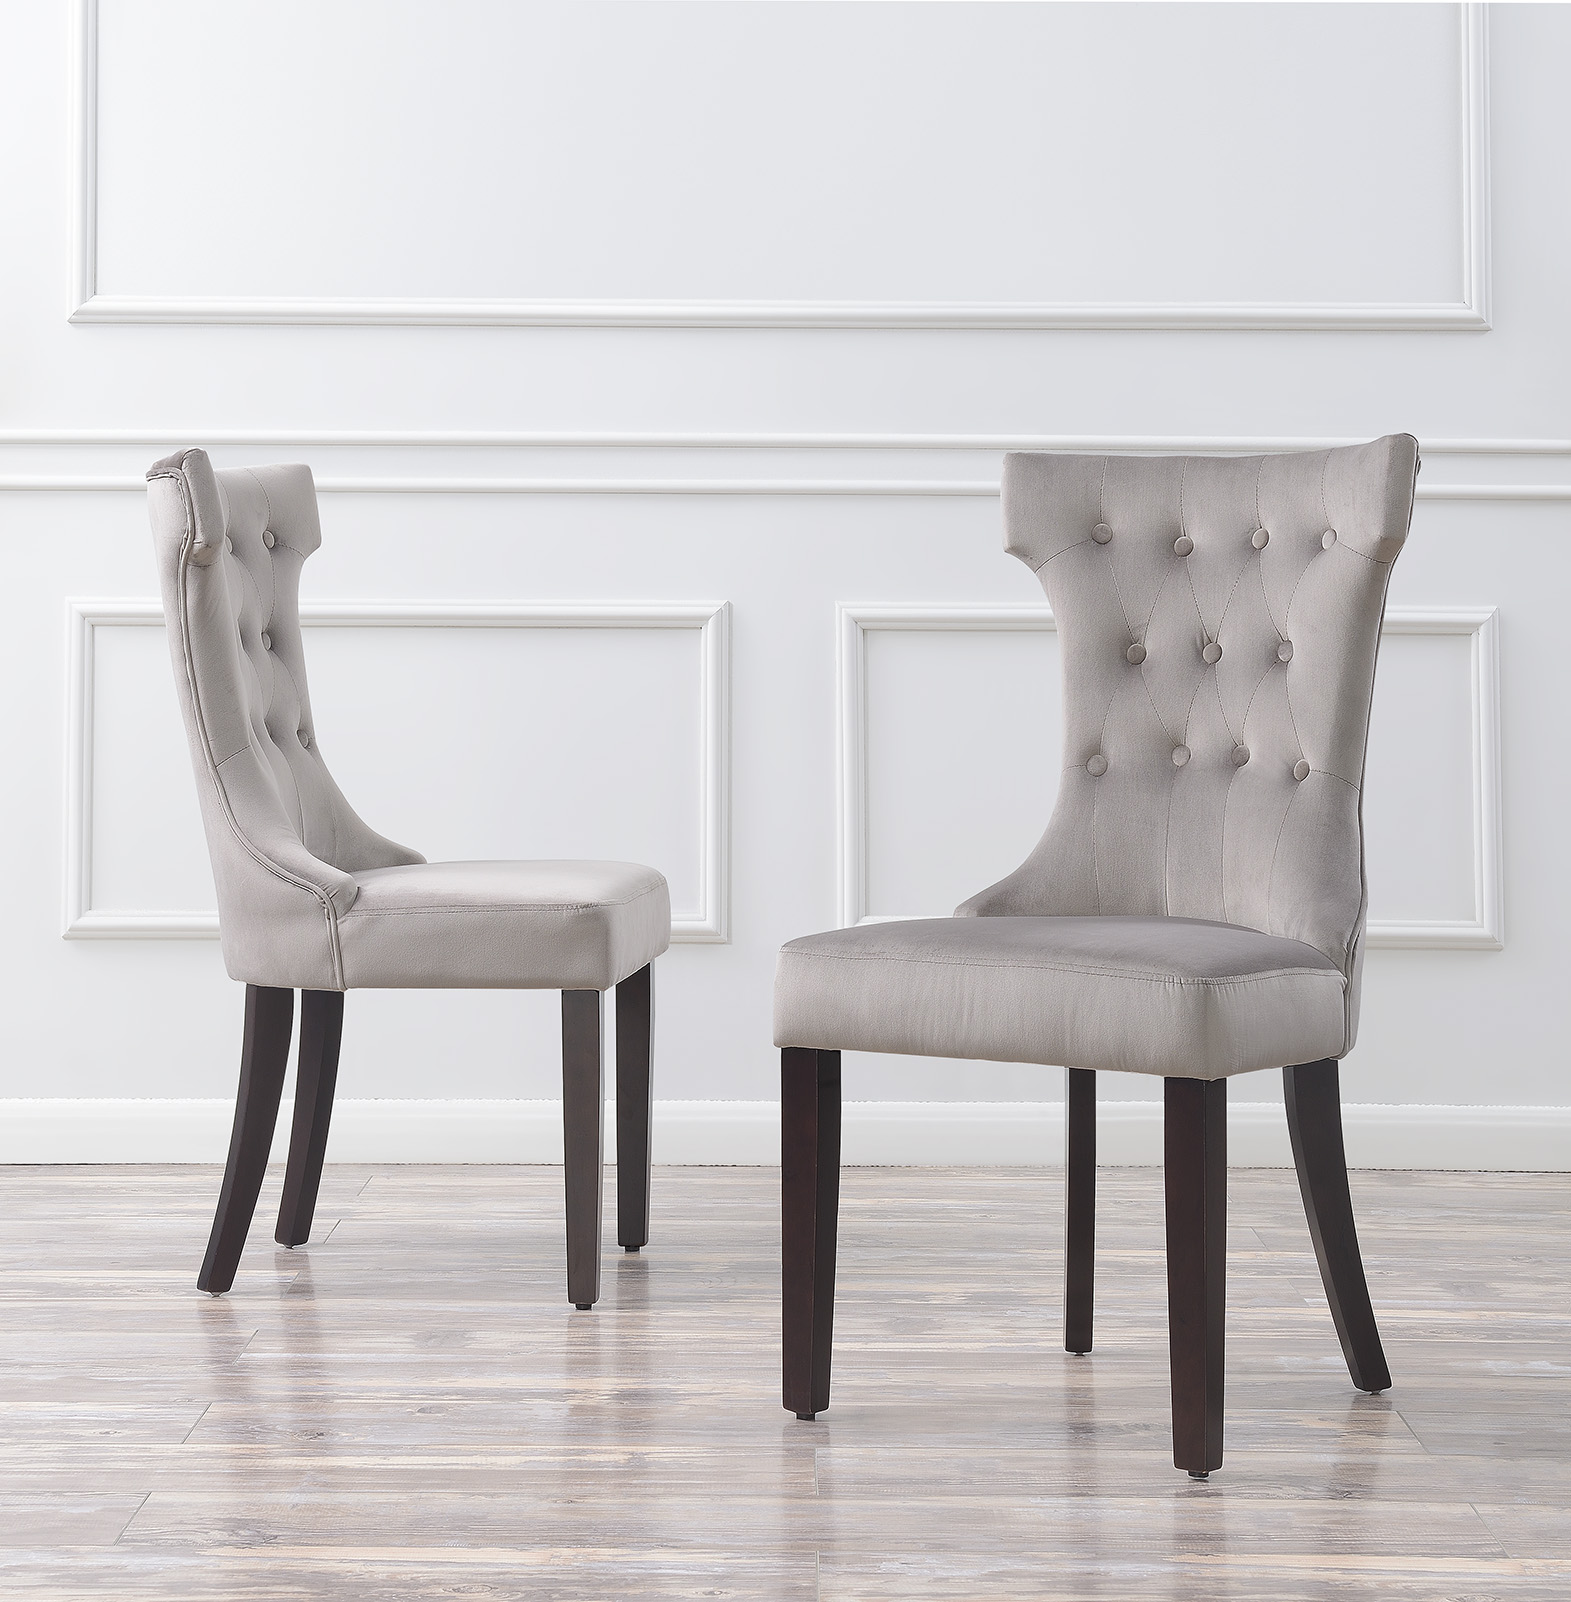 Set of 2 Elegant Tufted Fabric Armless Side Chairs Modern Black